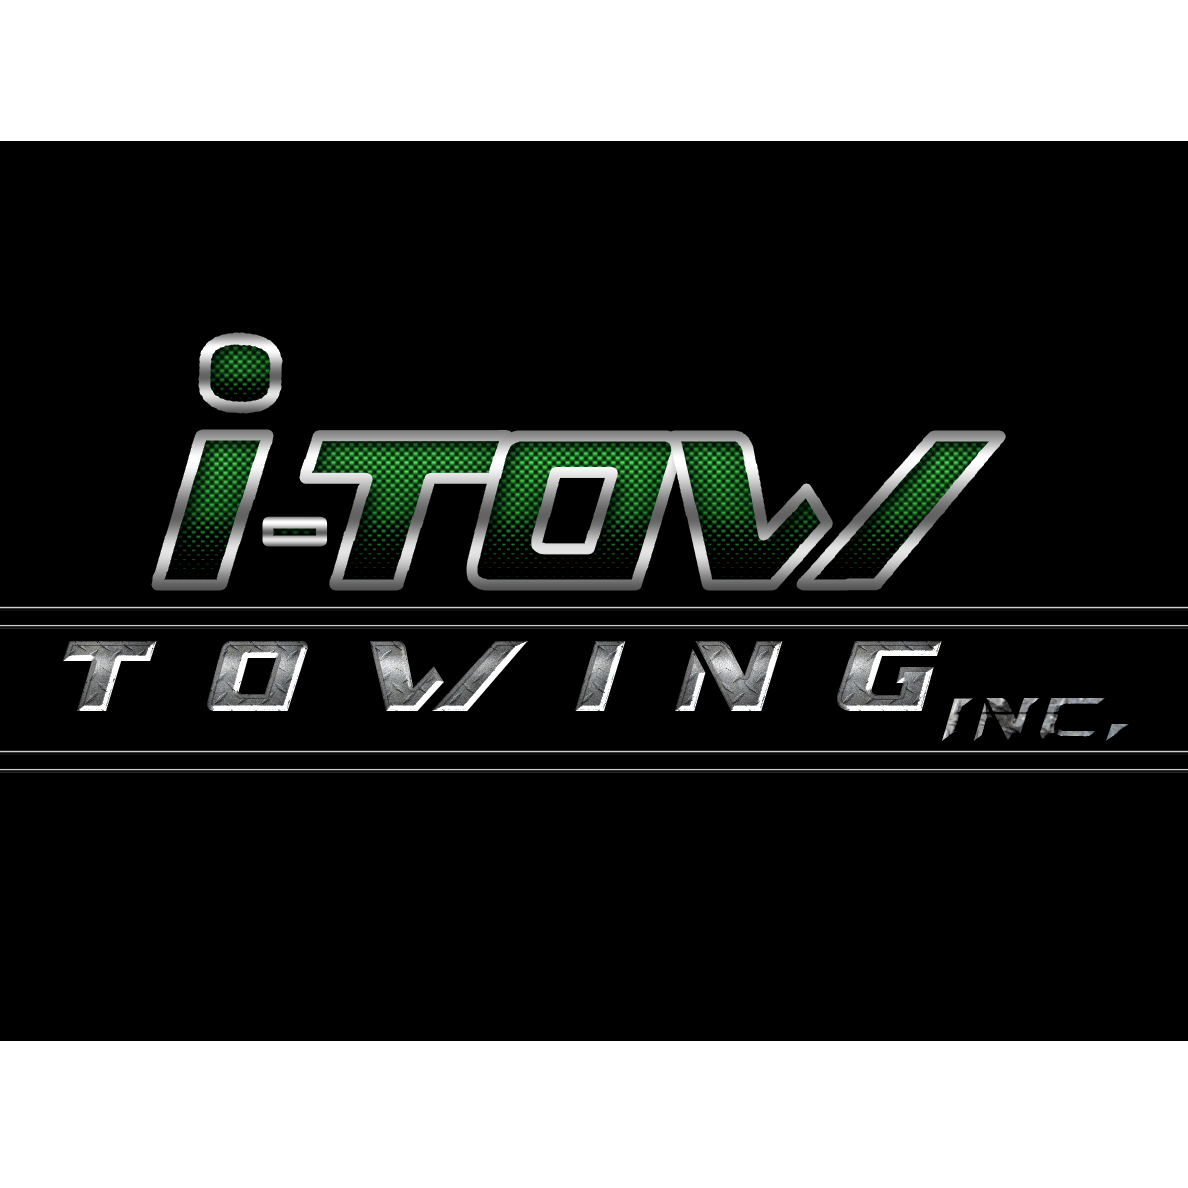 I-Tow Towing